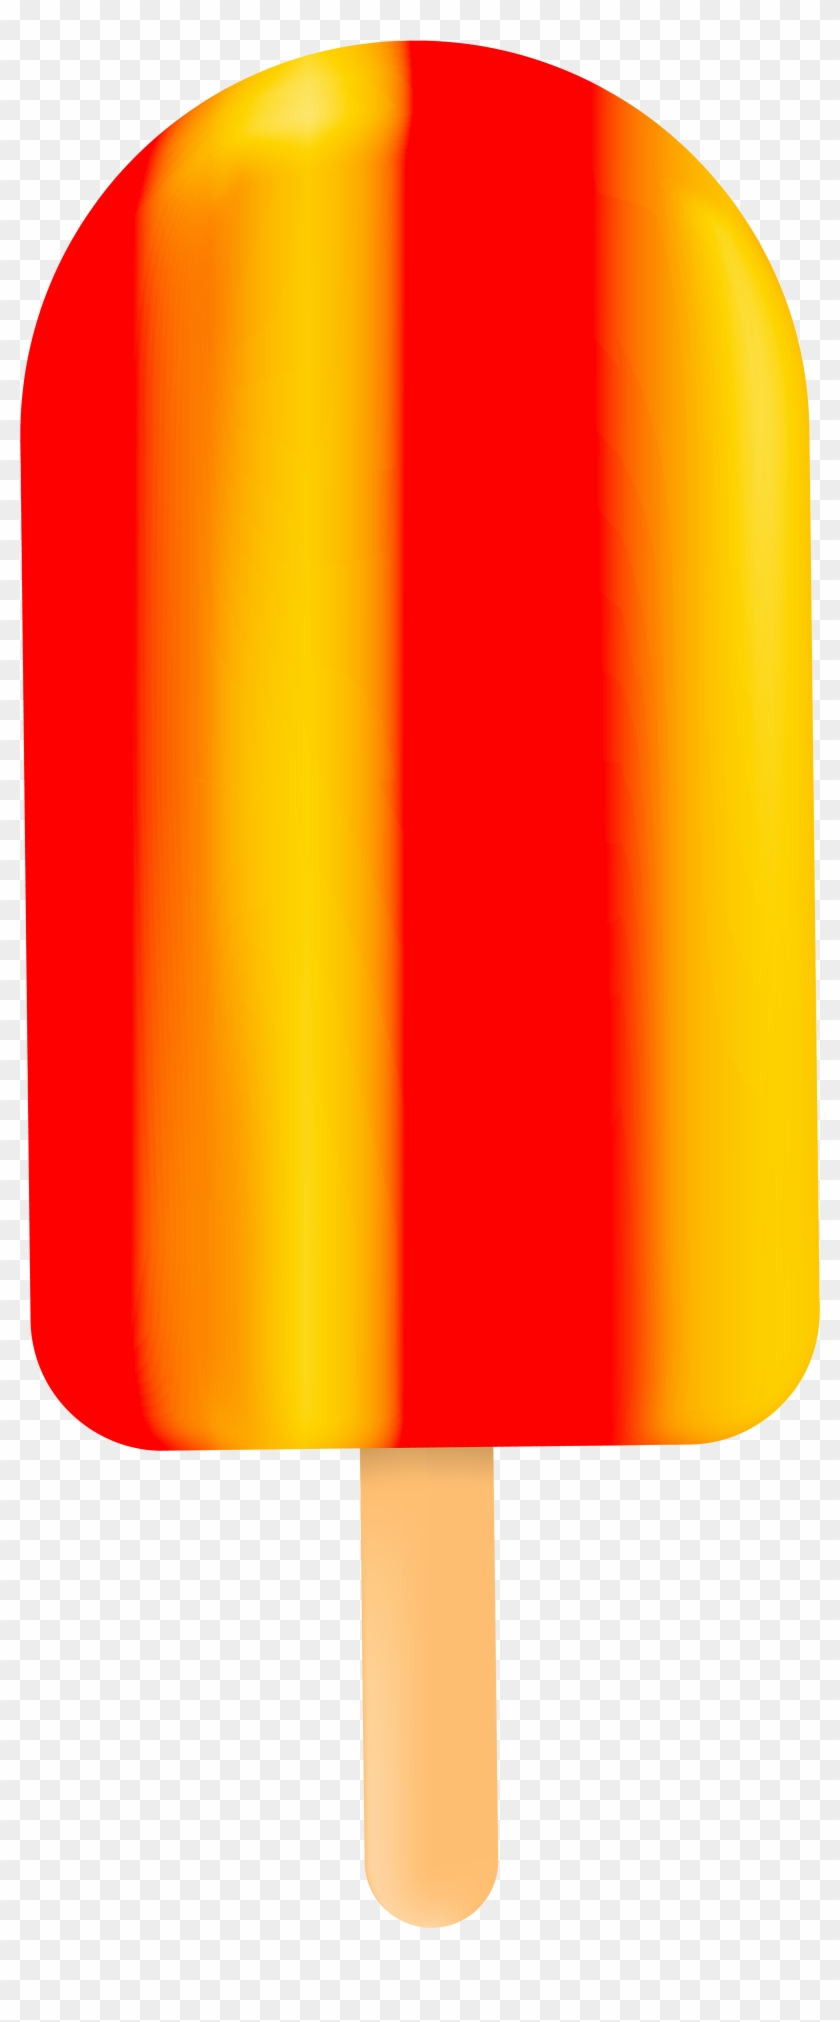 Ice Cream Bar Red Yellow Png Clip Art - Red And Yellow Ice Cream #172076